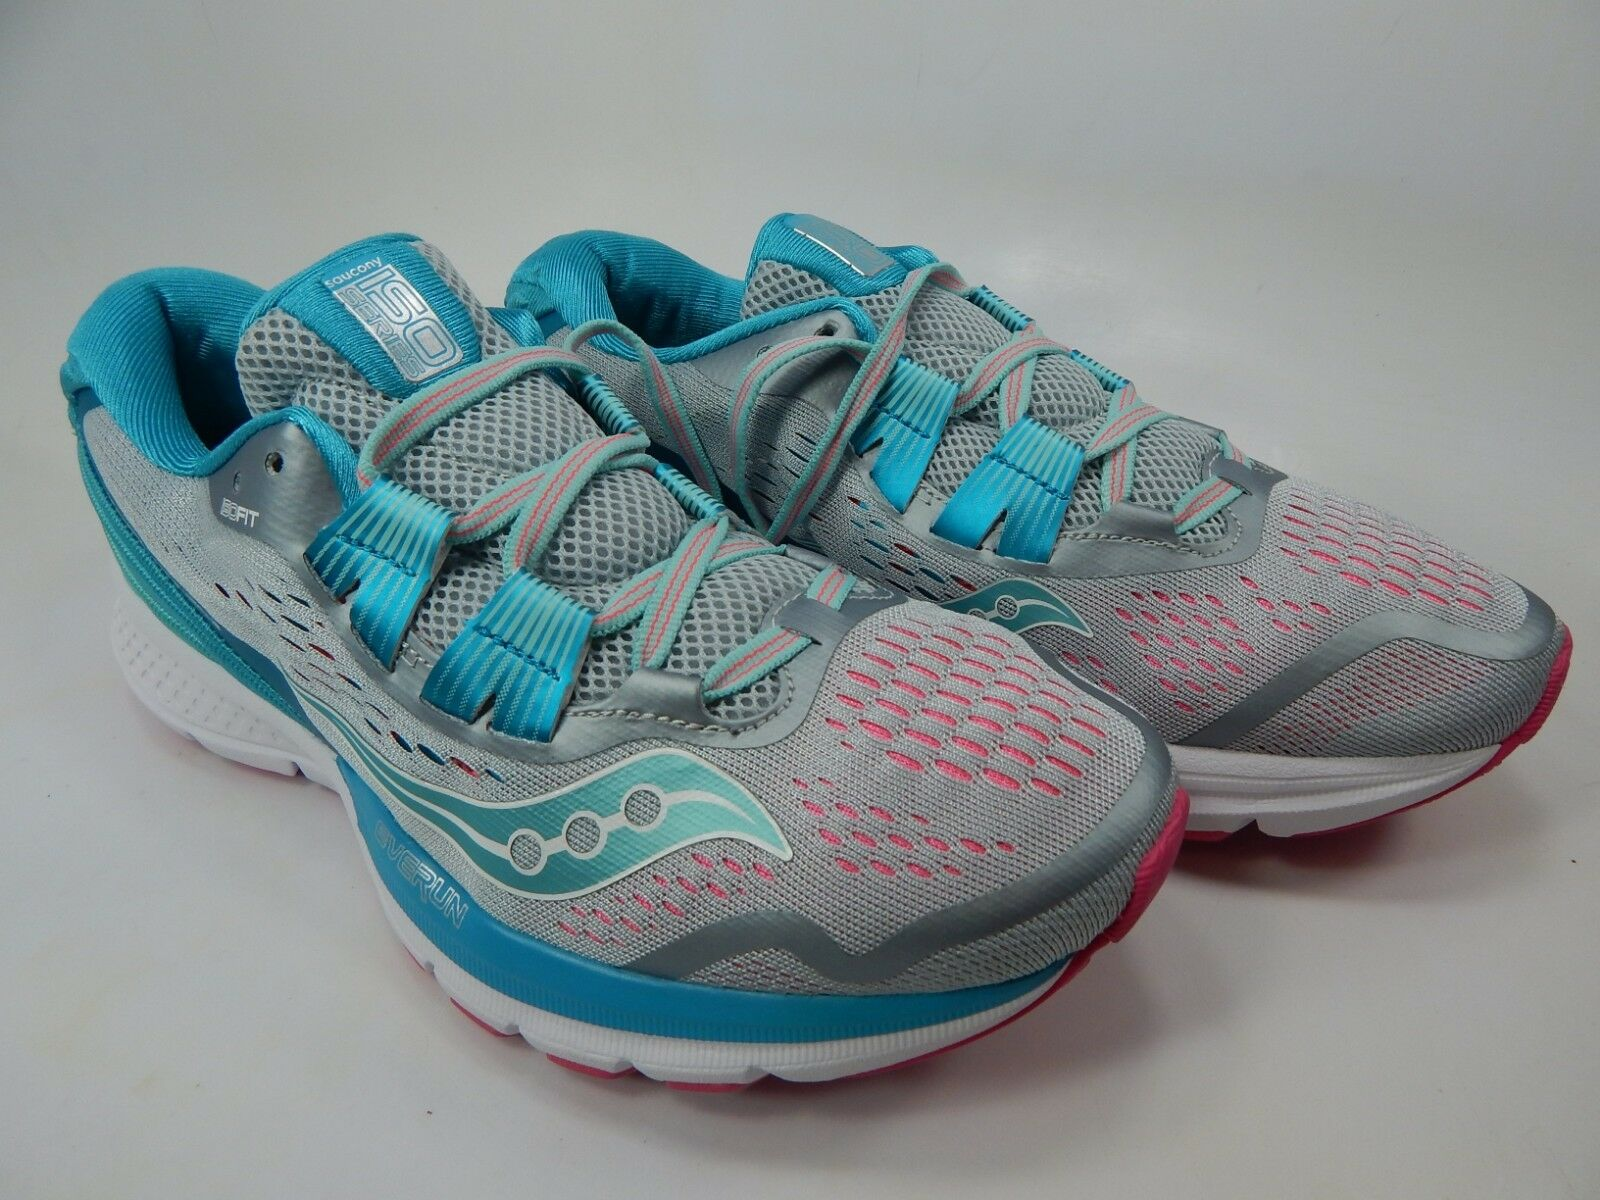 Saucony Zealot ISO 3 Size 8 M (B) Women's Running Shoes Grey/Blue S10369-1